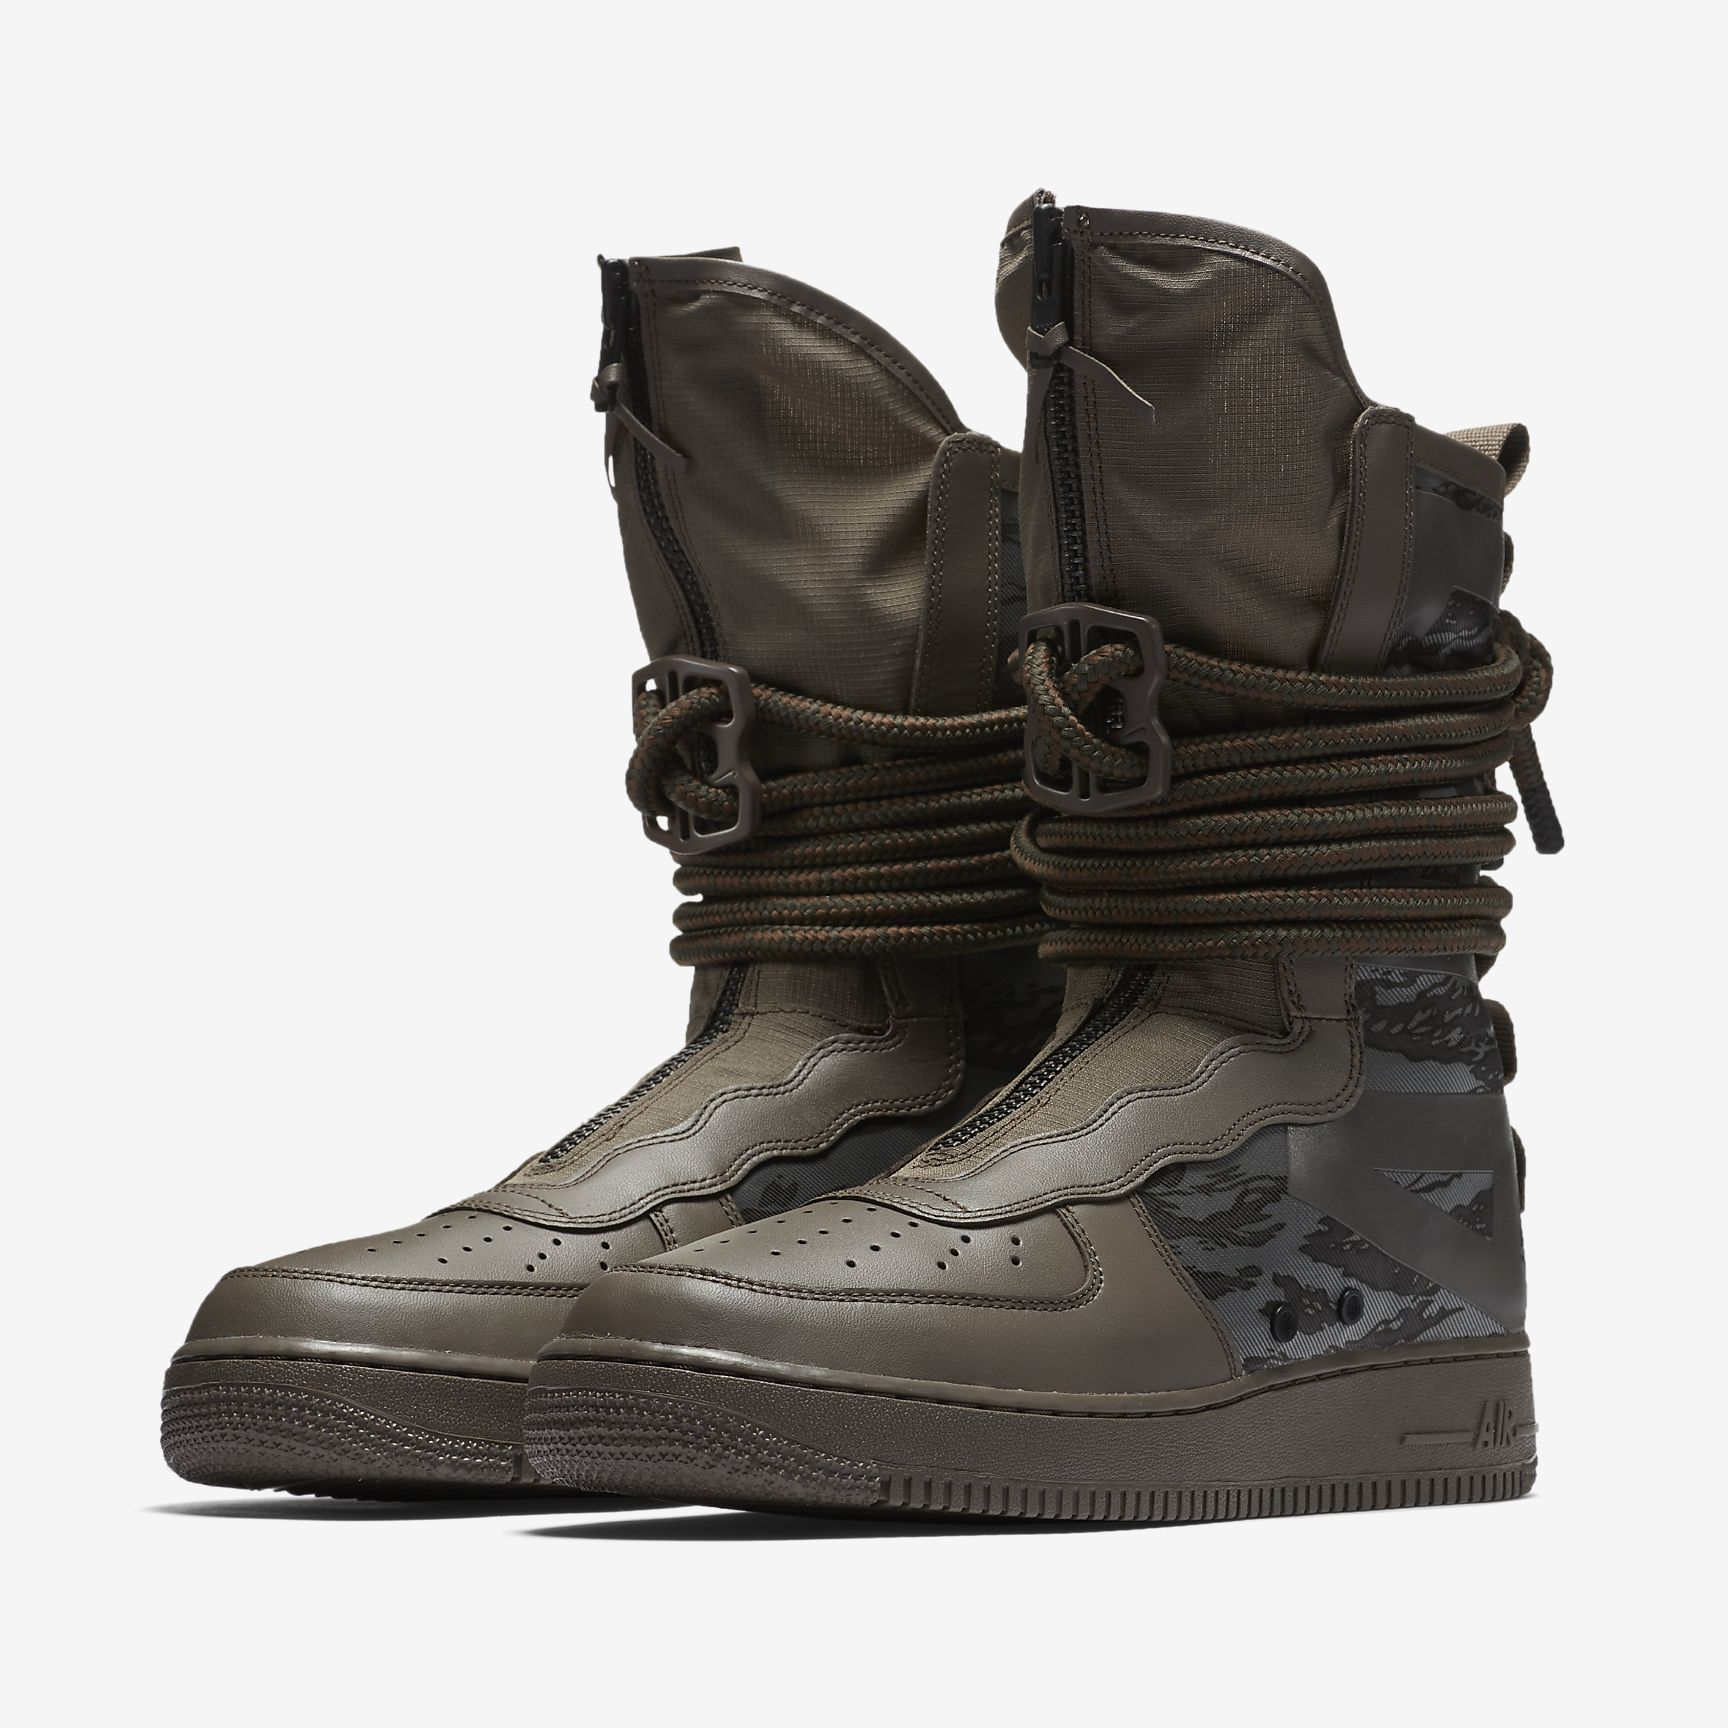 Nike Sf Air Force 1 Hi Boots Camo Boots Sneaker Boots